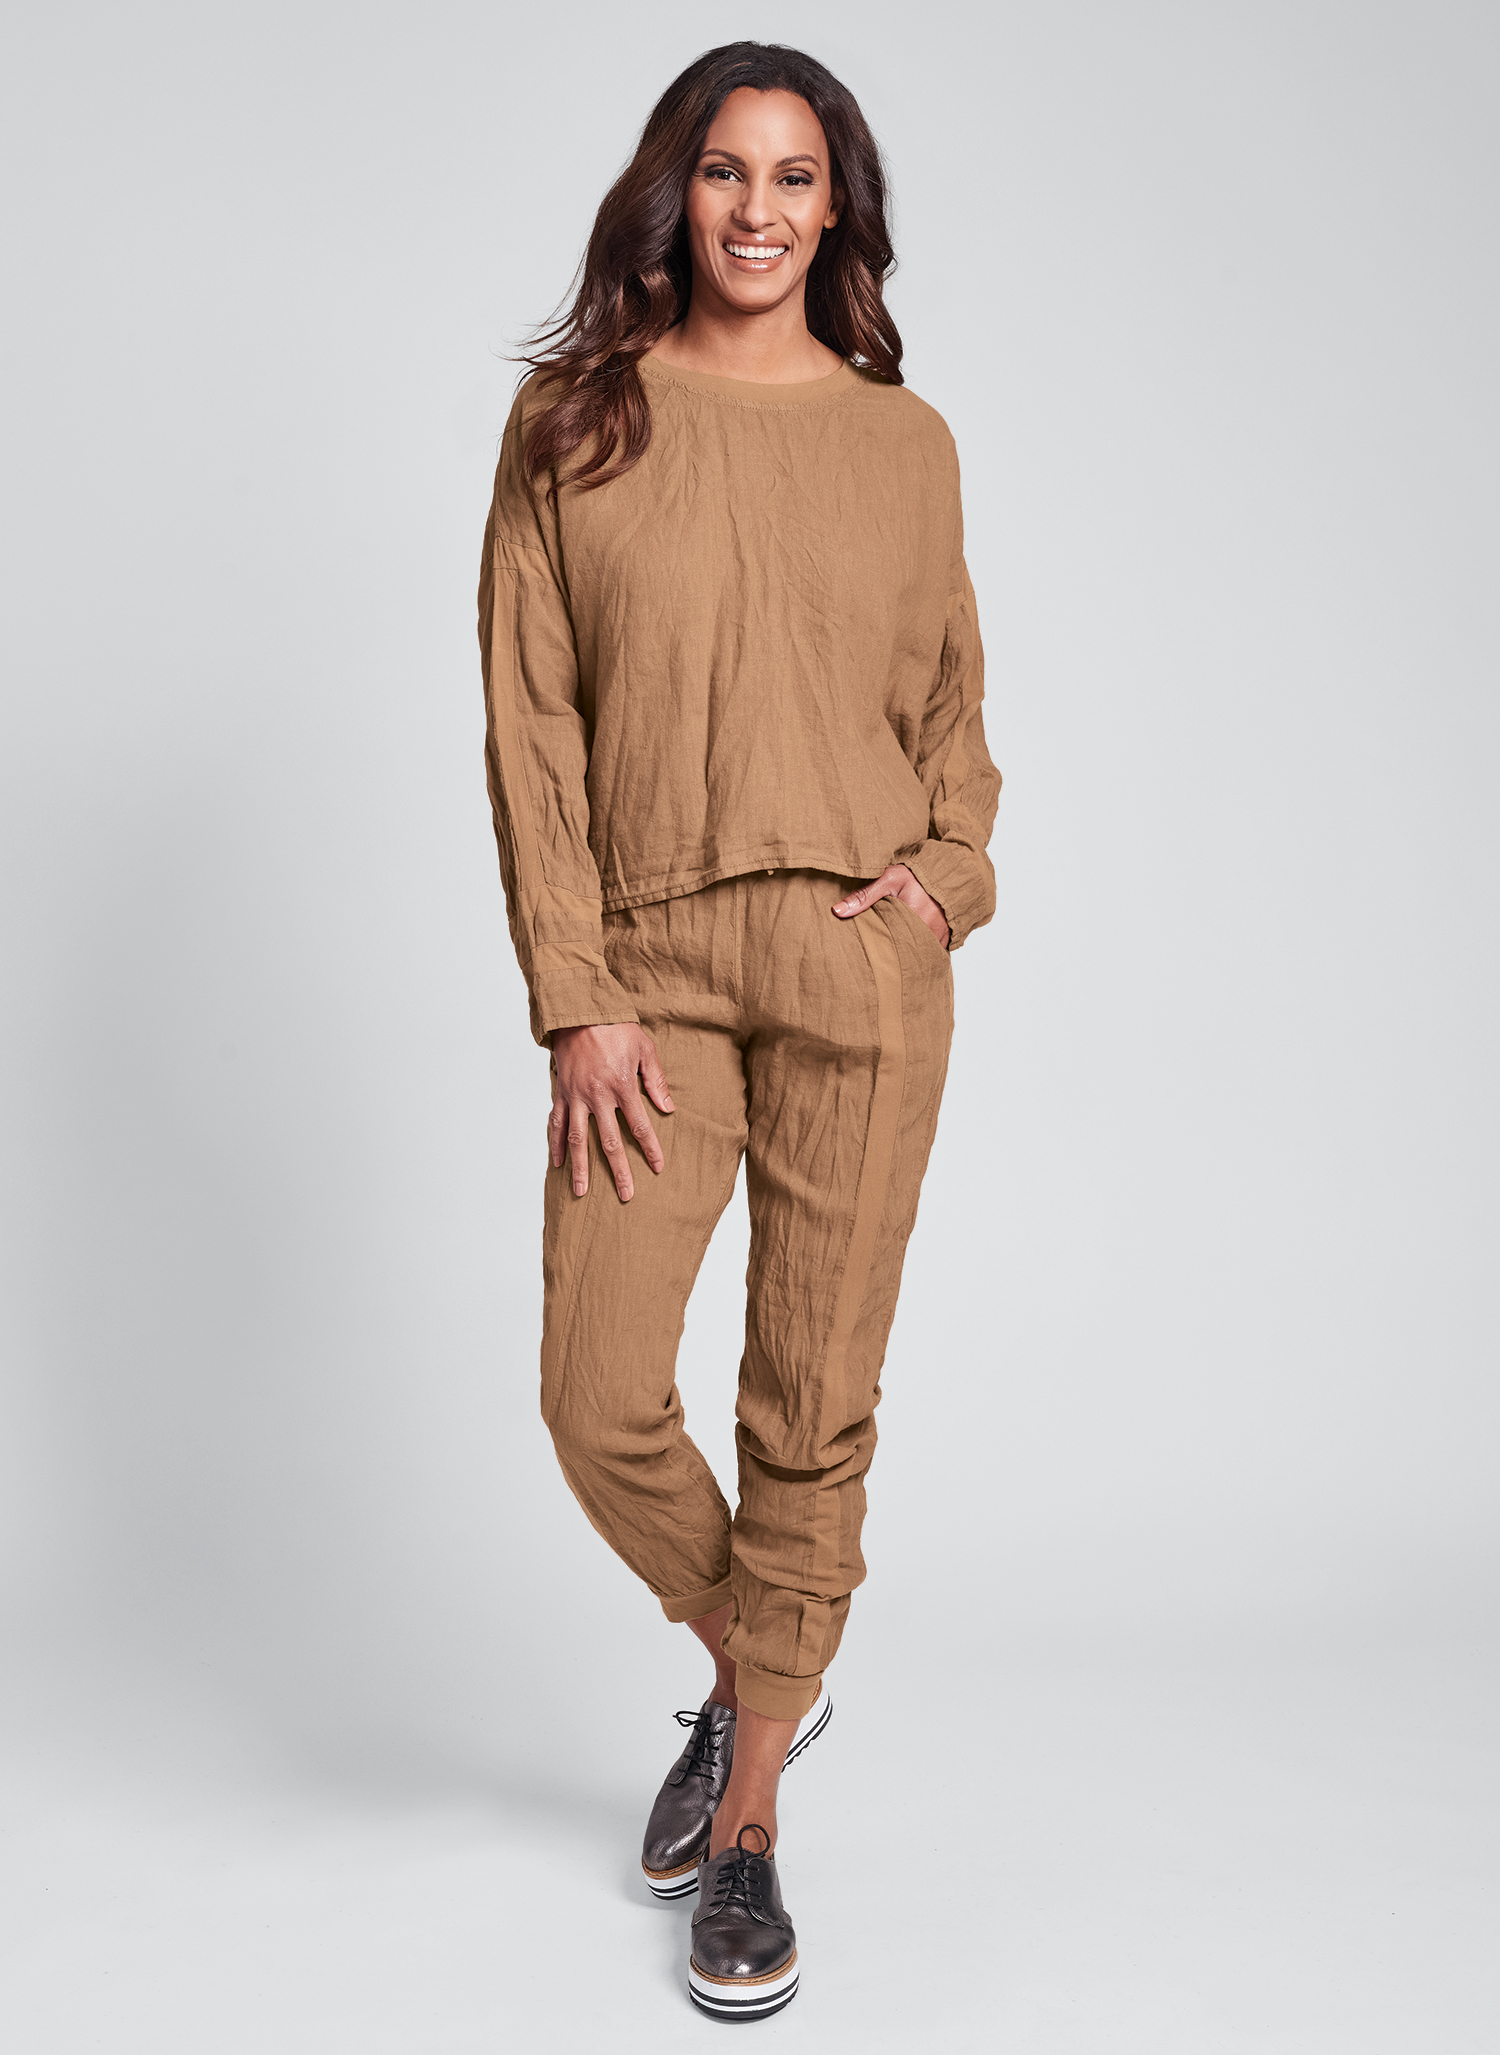 Urban FLAX Fall 2019